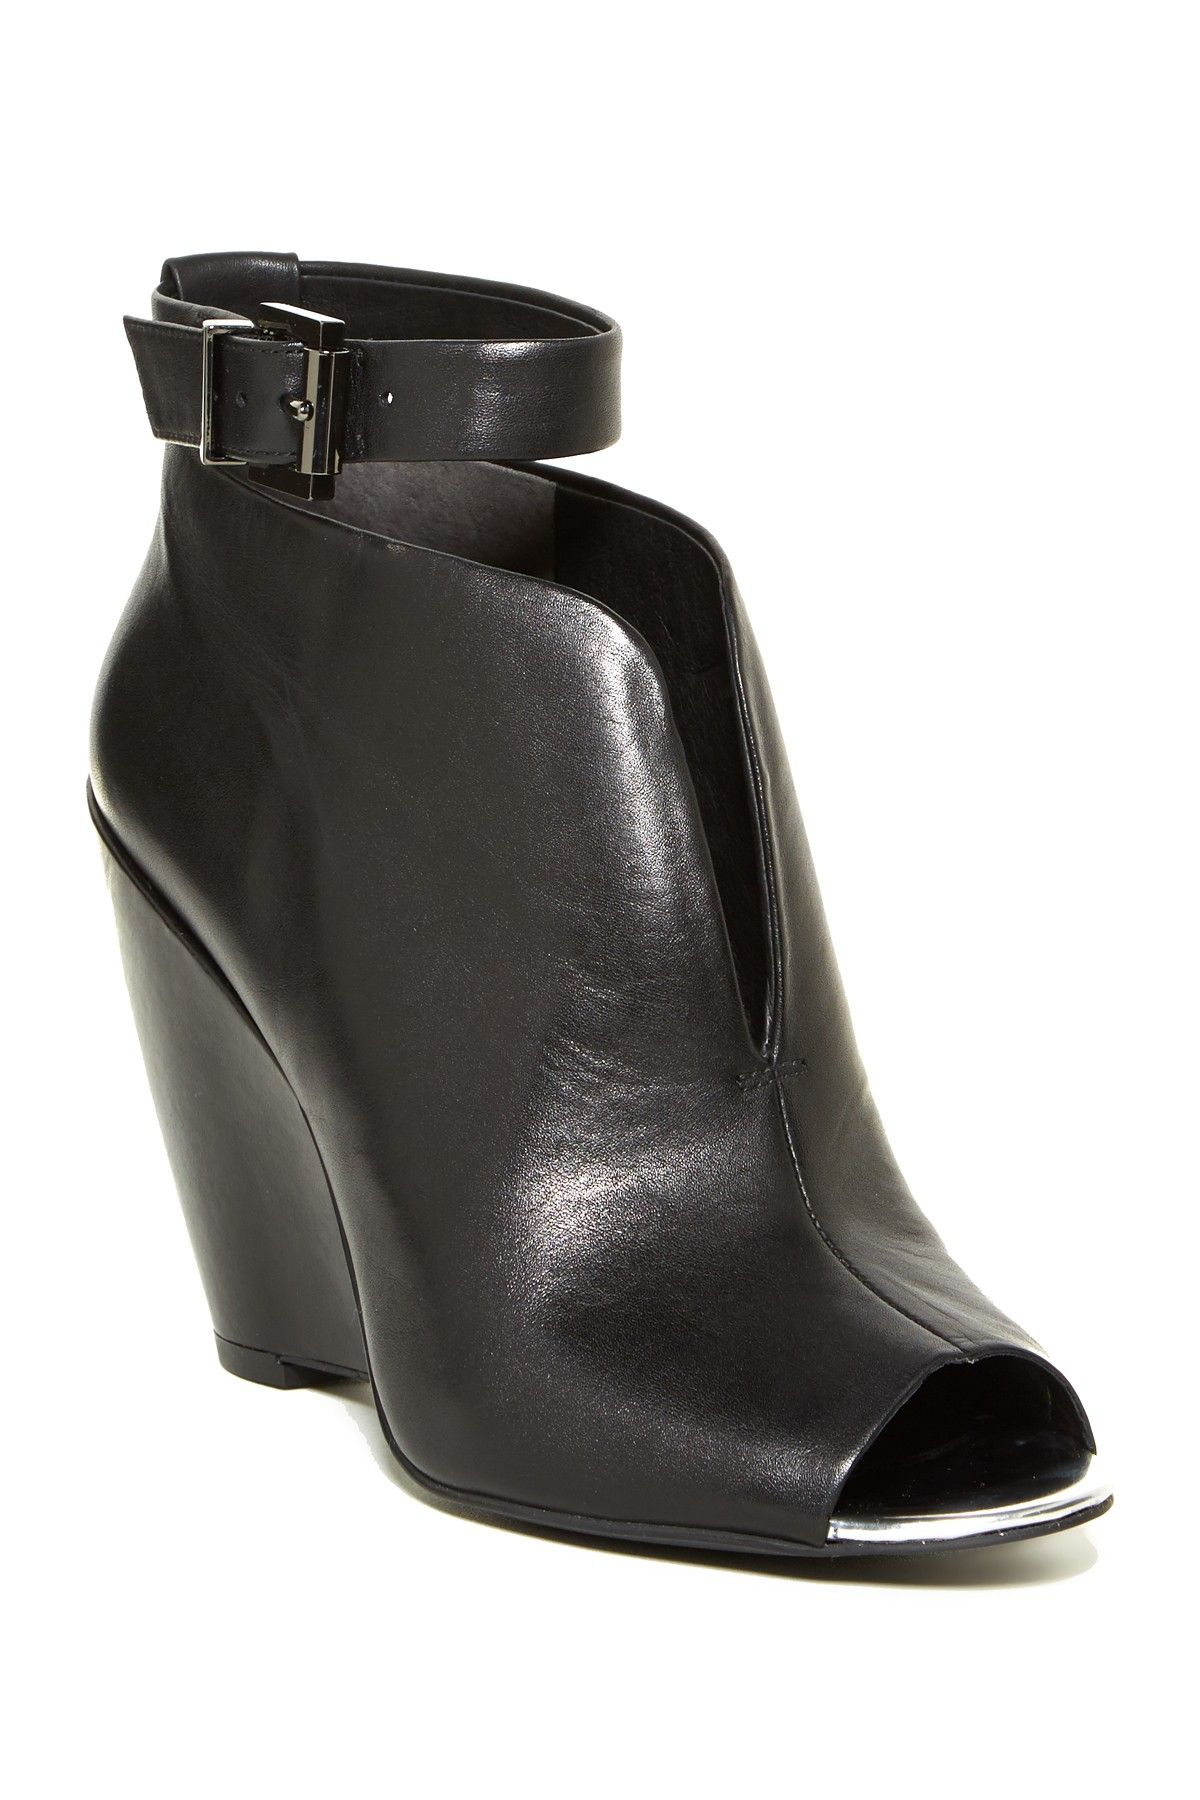 7280a01ed27594 Broome Wedge Bootie by Kenneth Cole New York on  nordstrom rack